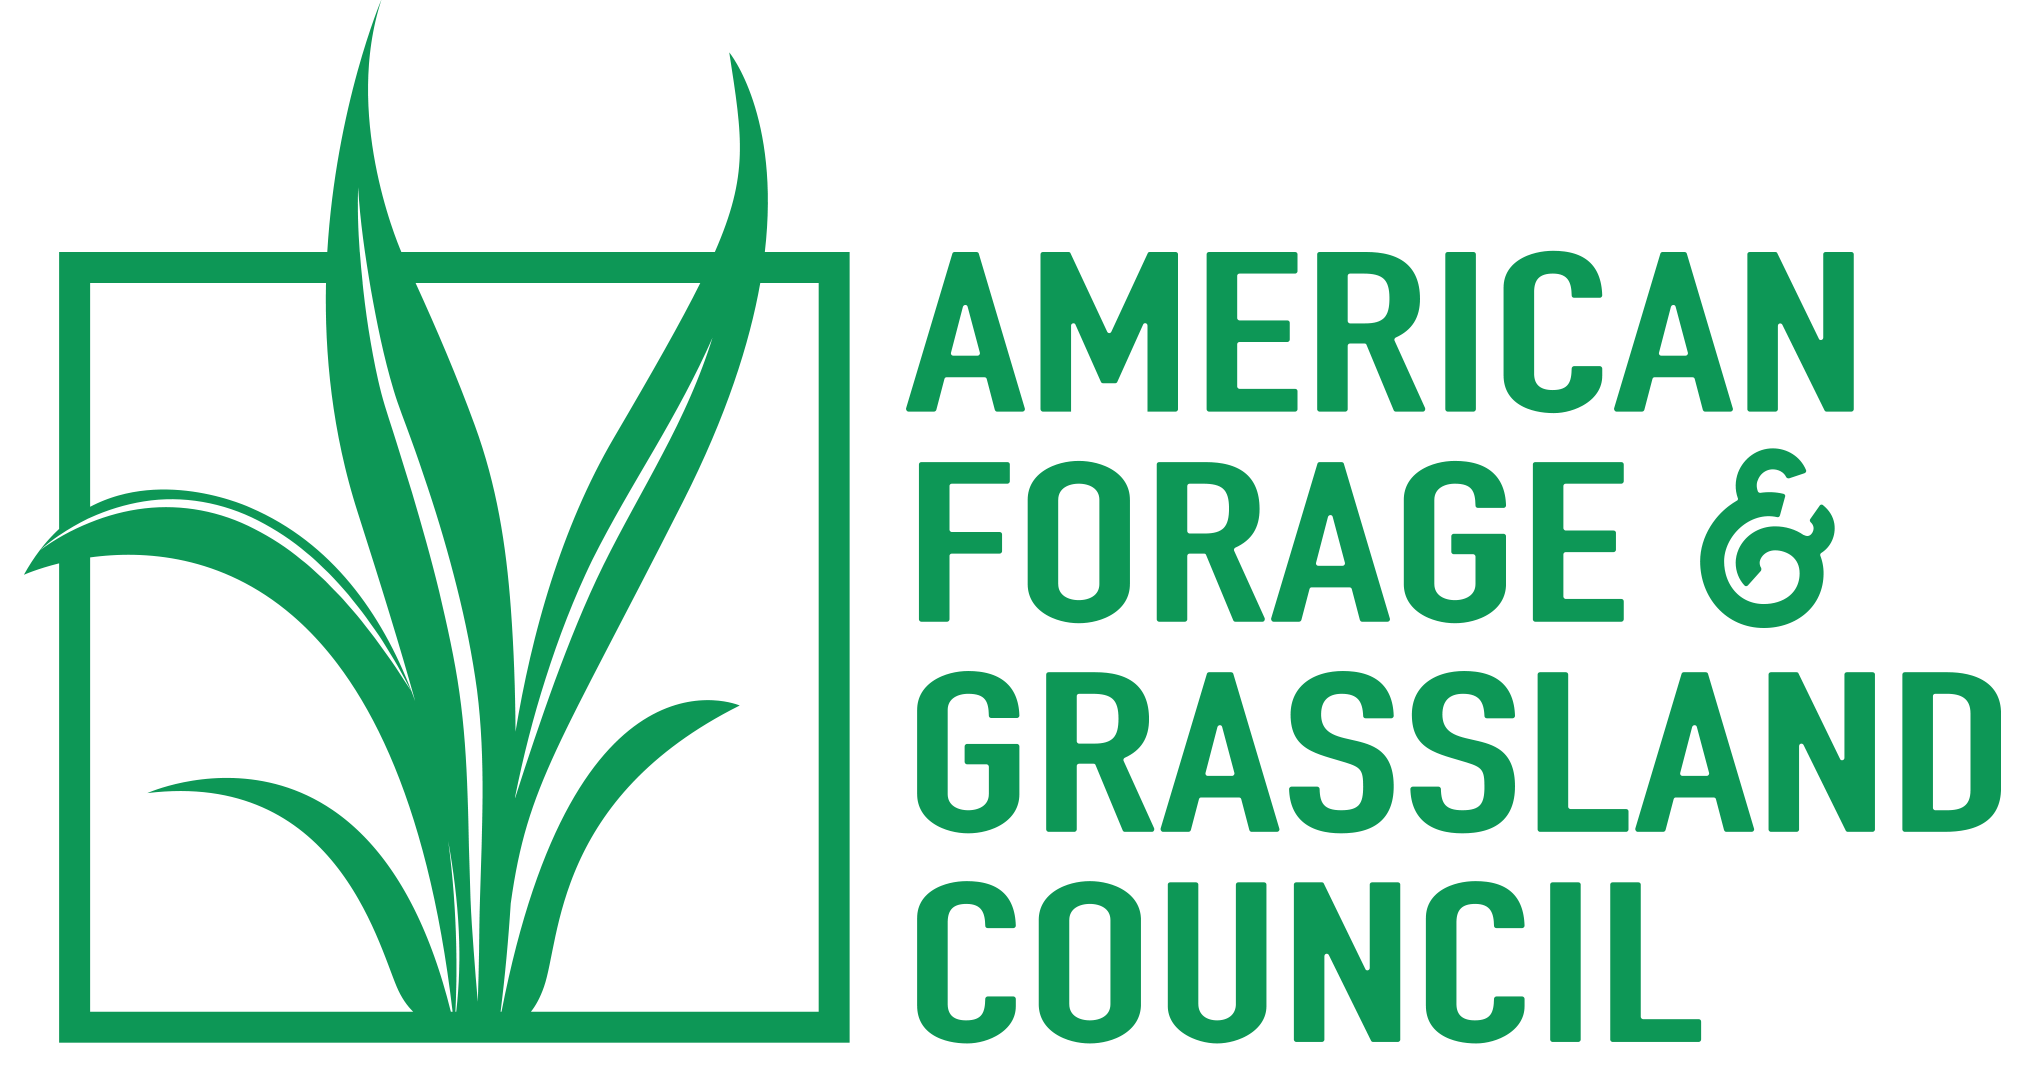 forage grasslands